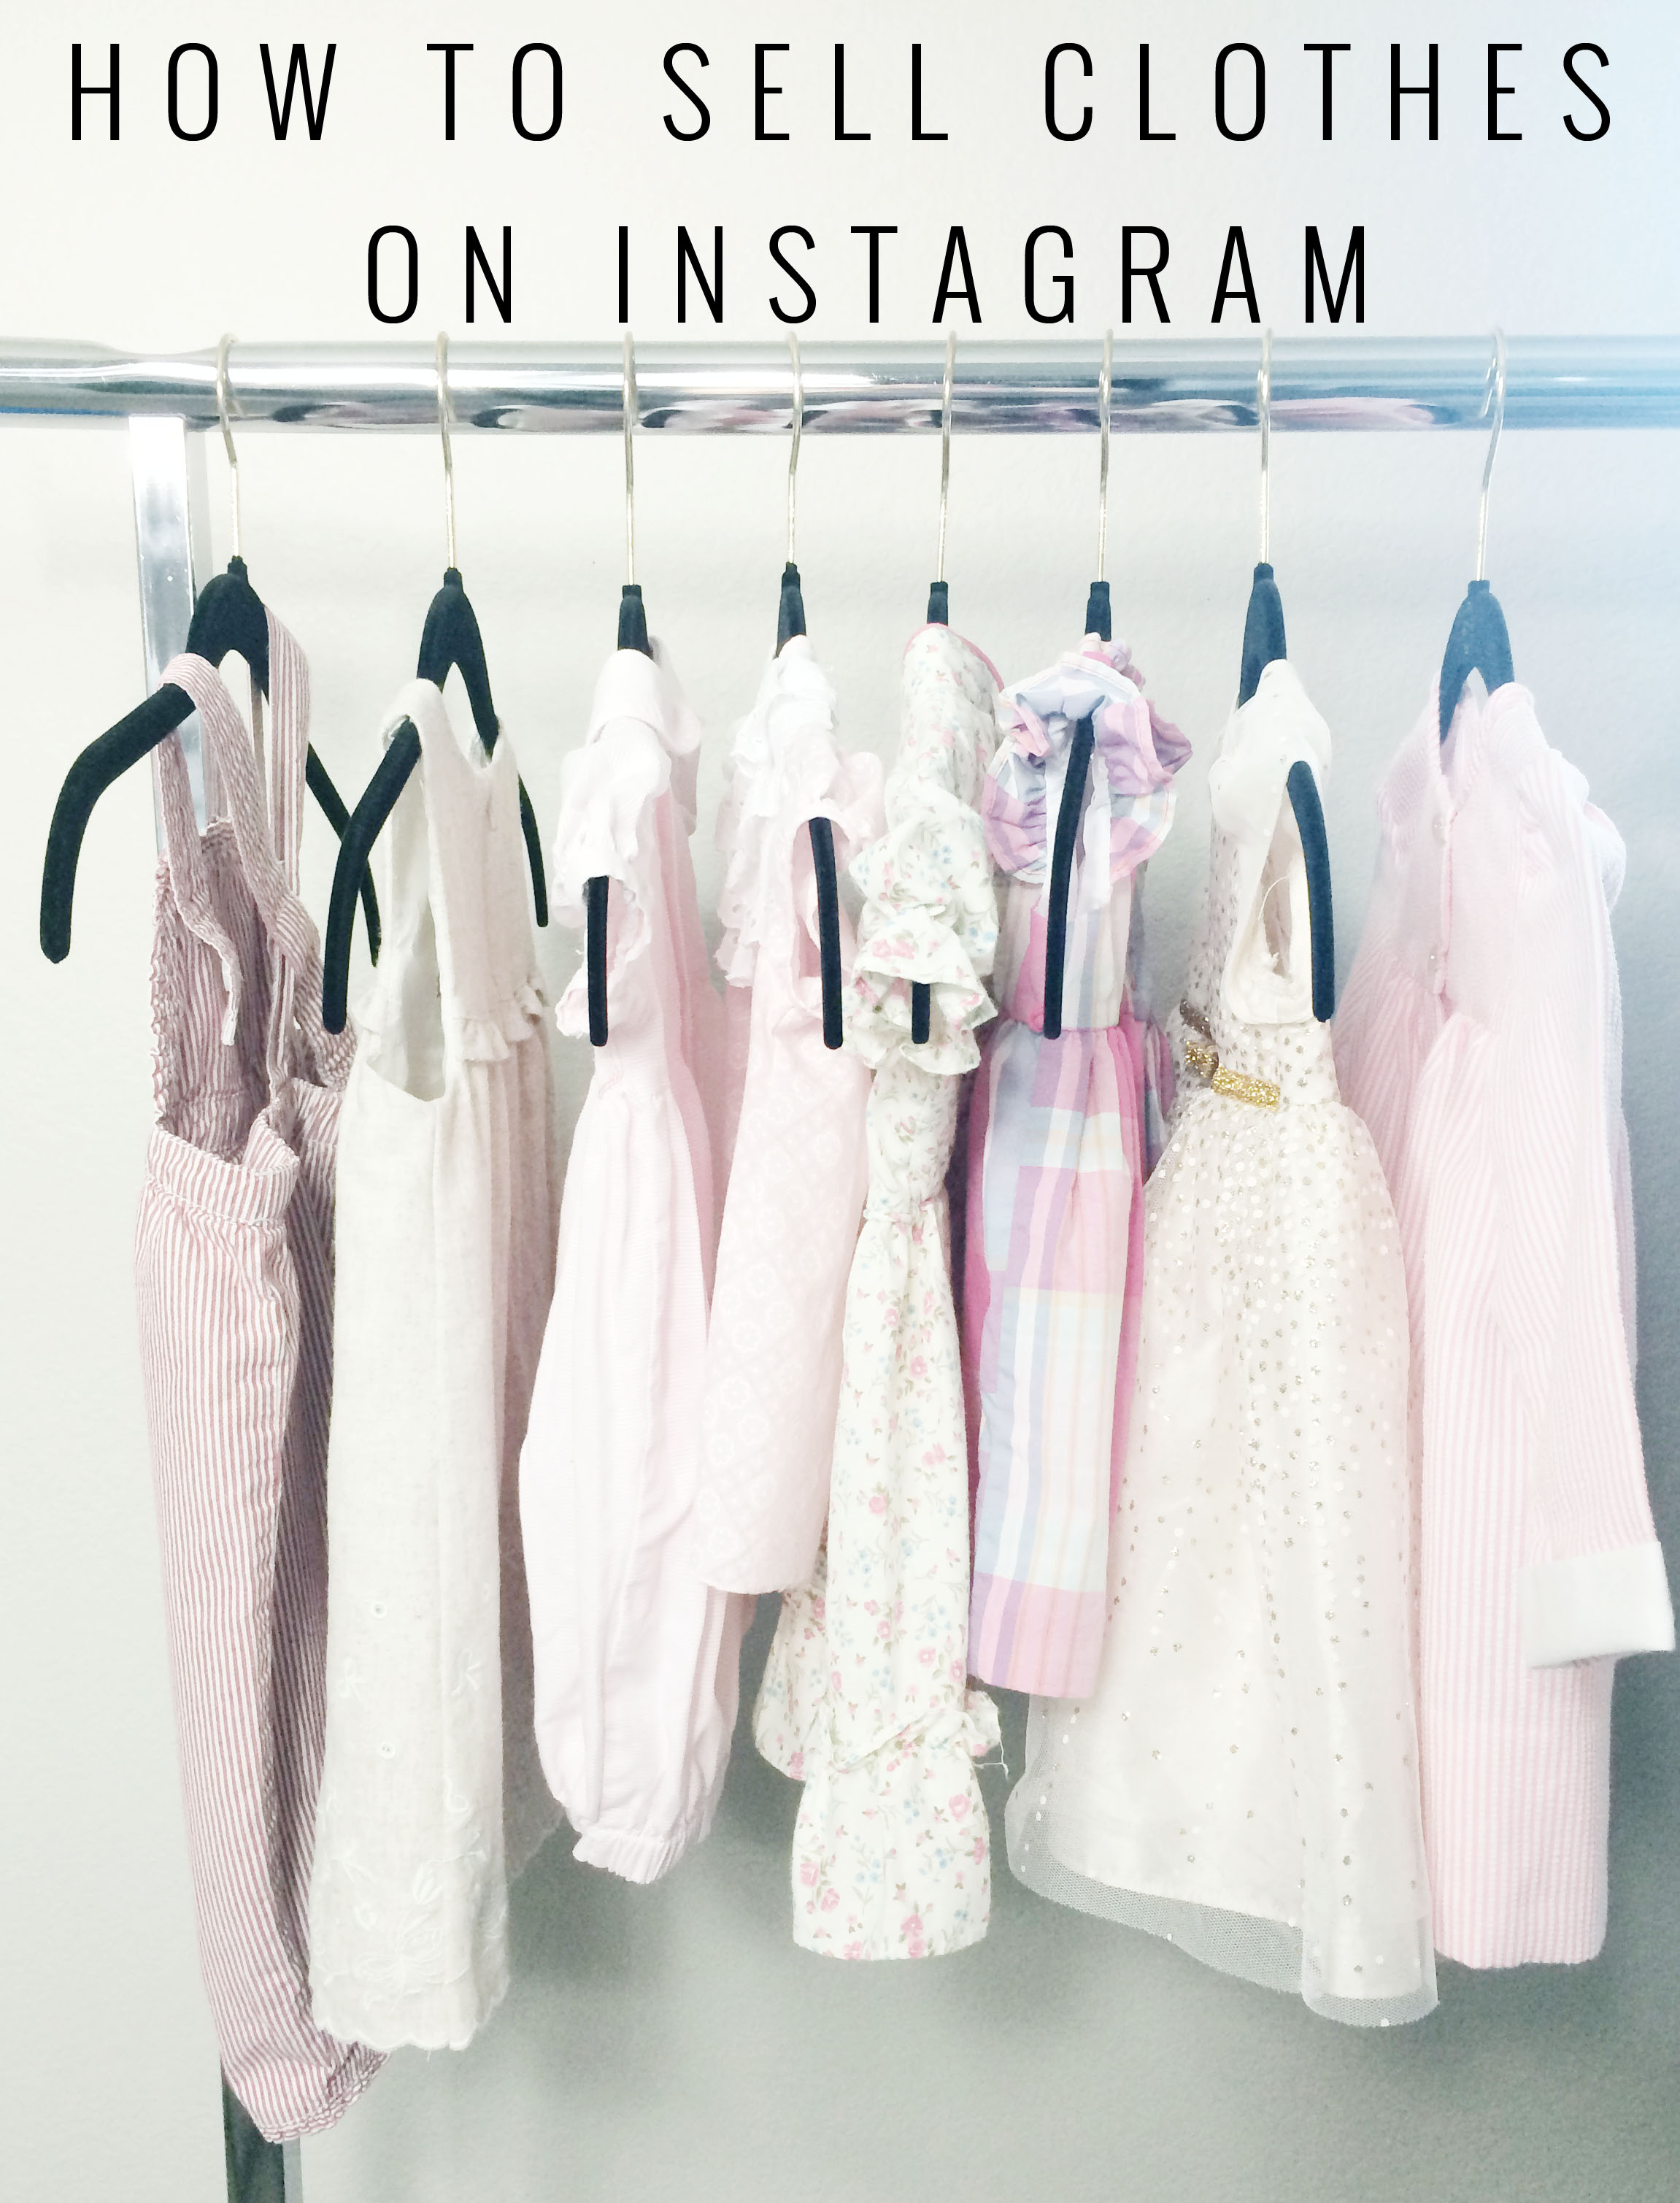 How To Sell Clothes On Instagram | Momma Society-The Community of Modern Moms | www.mommasociety.com | Join our Party on Instagram @mommasociety